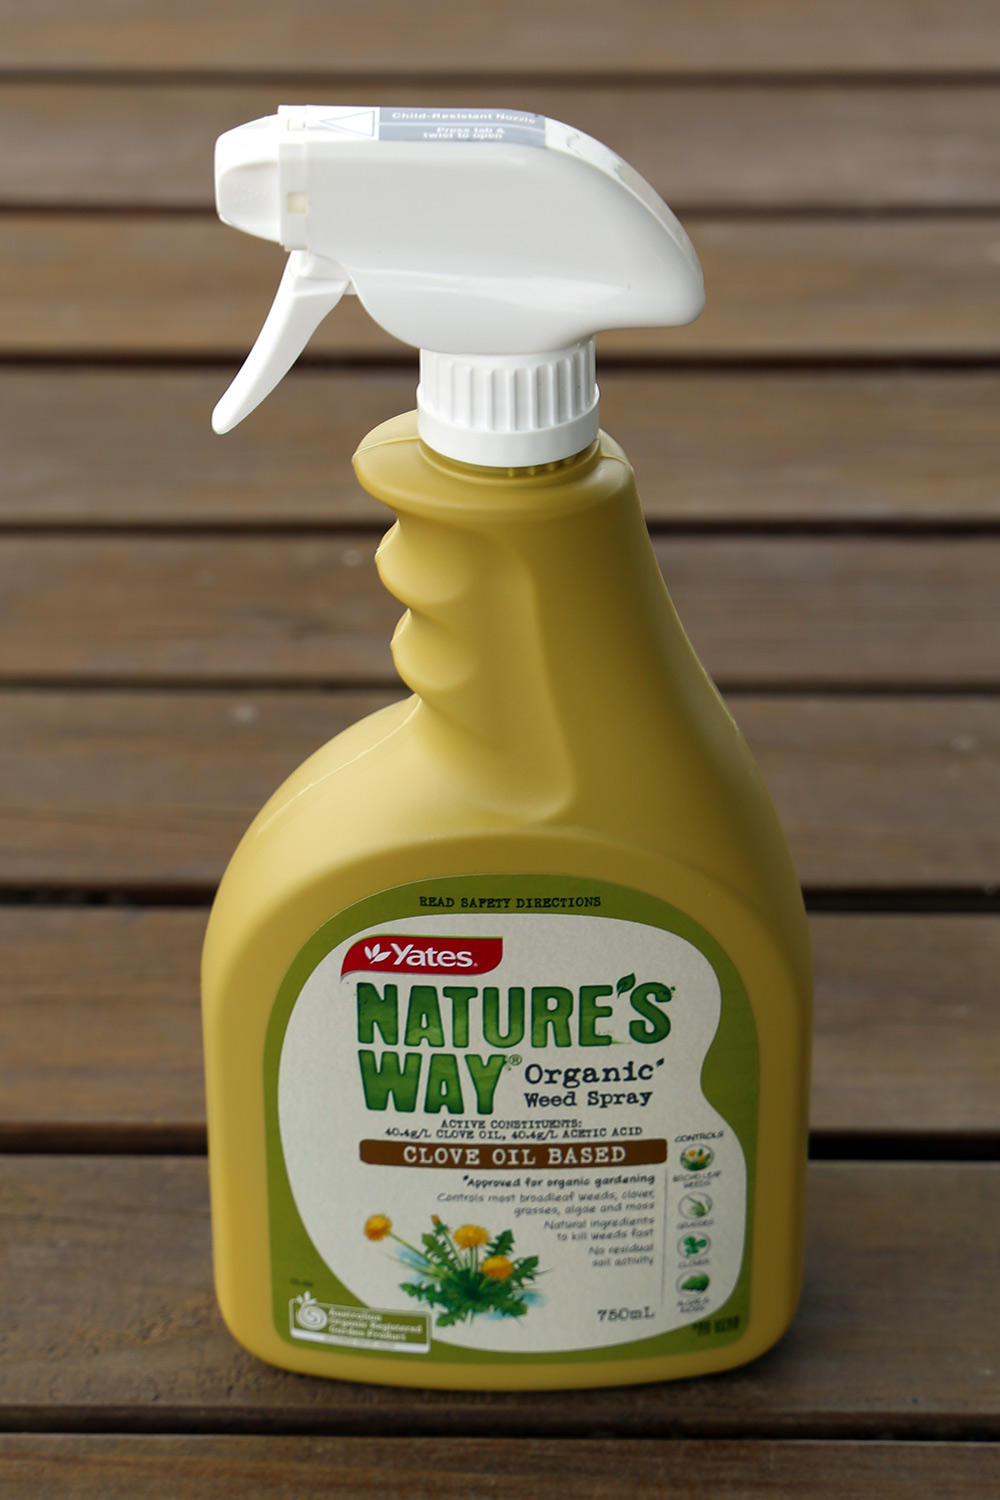 Yates Nature's Way Organic Weed Spray 750ml